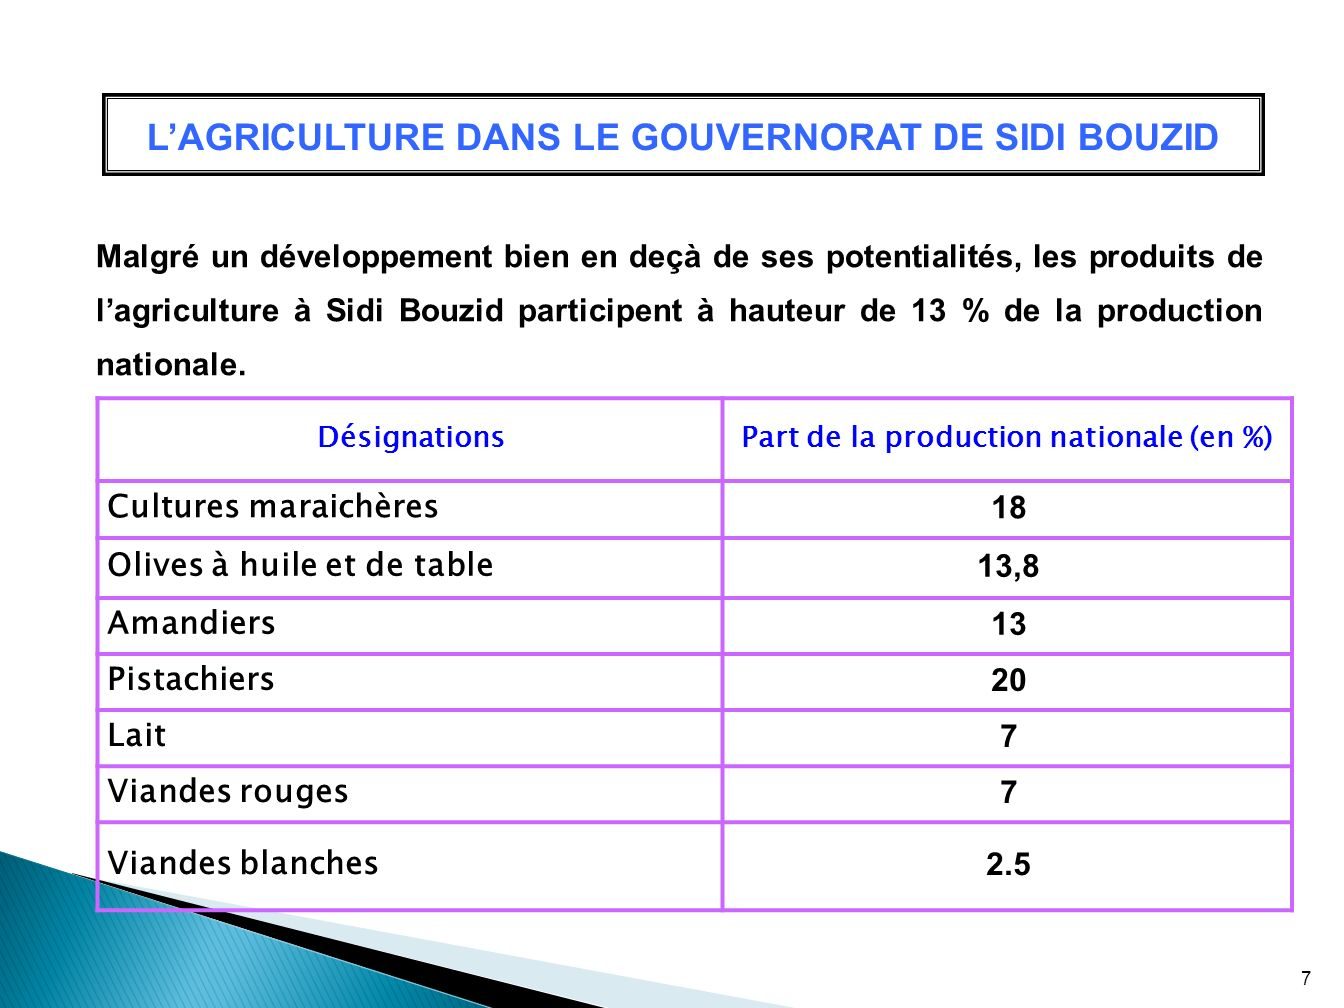 Part de la production nationale (en %)